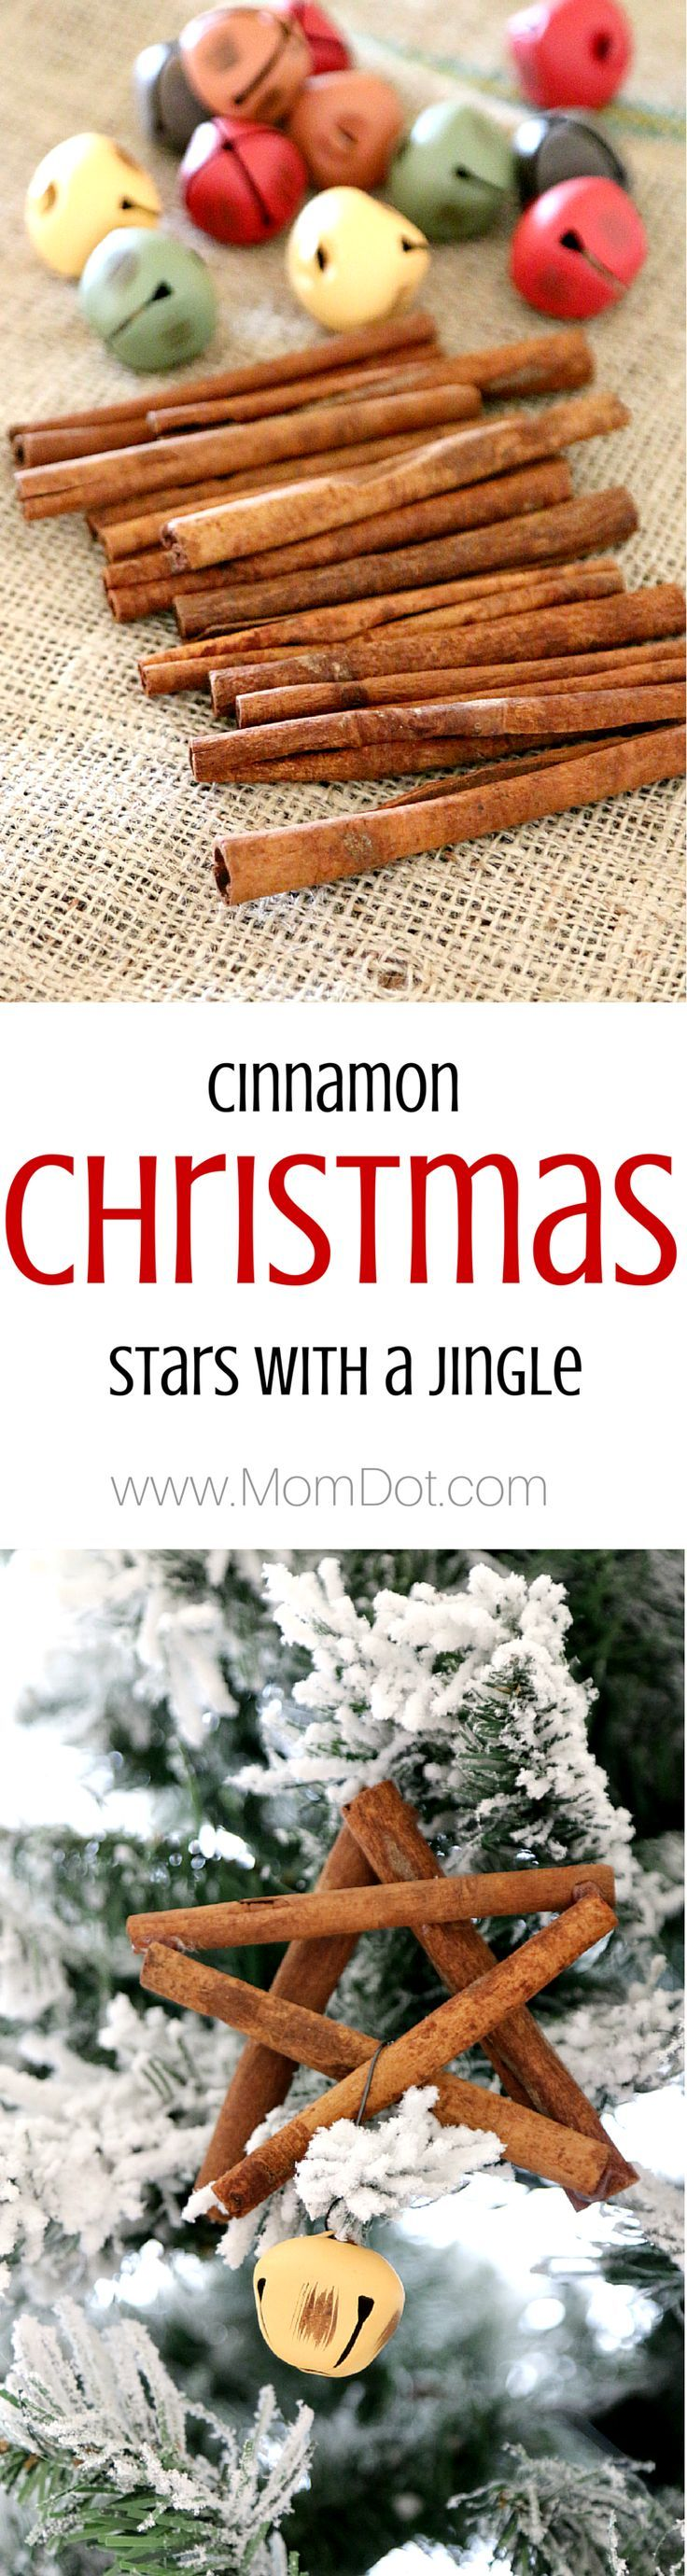 how to make a cinnamon stick ornament tutorial